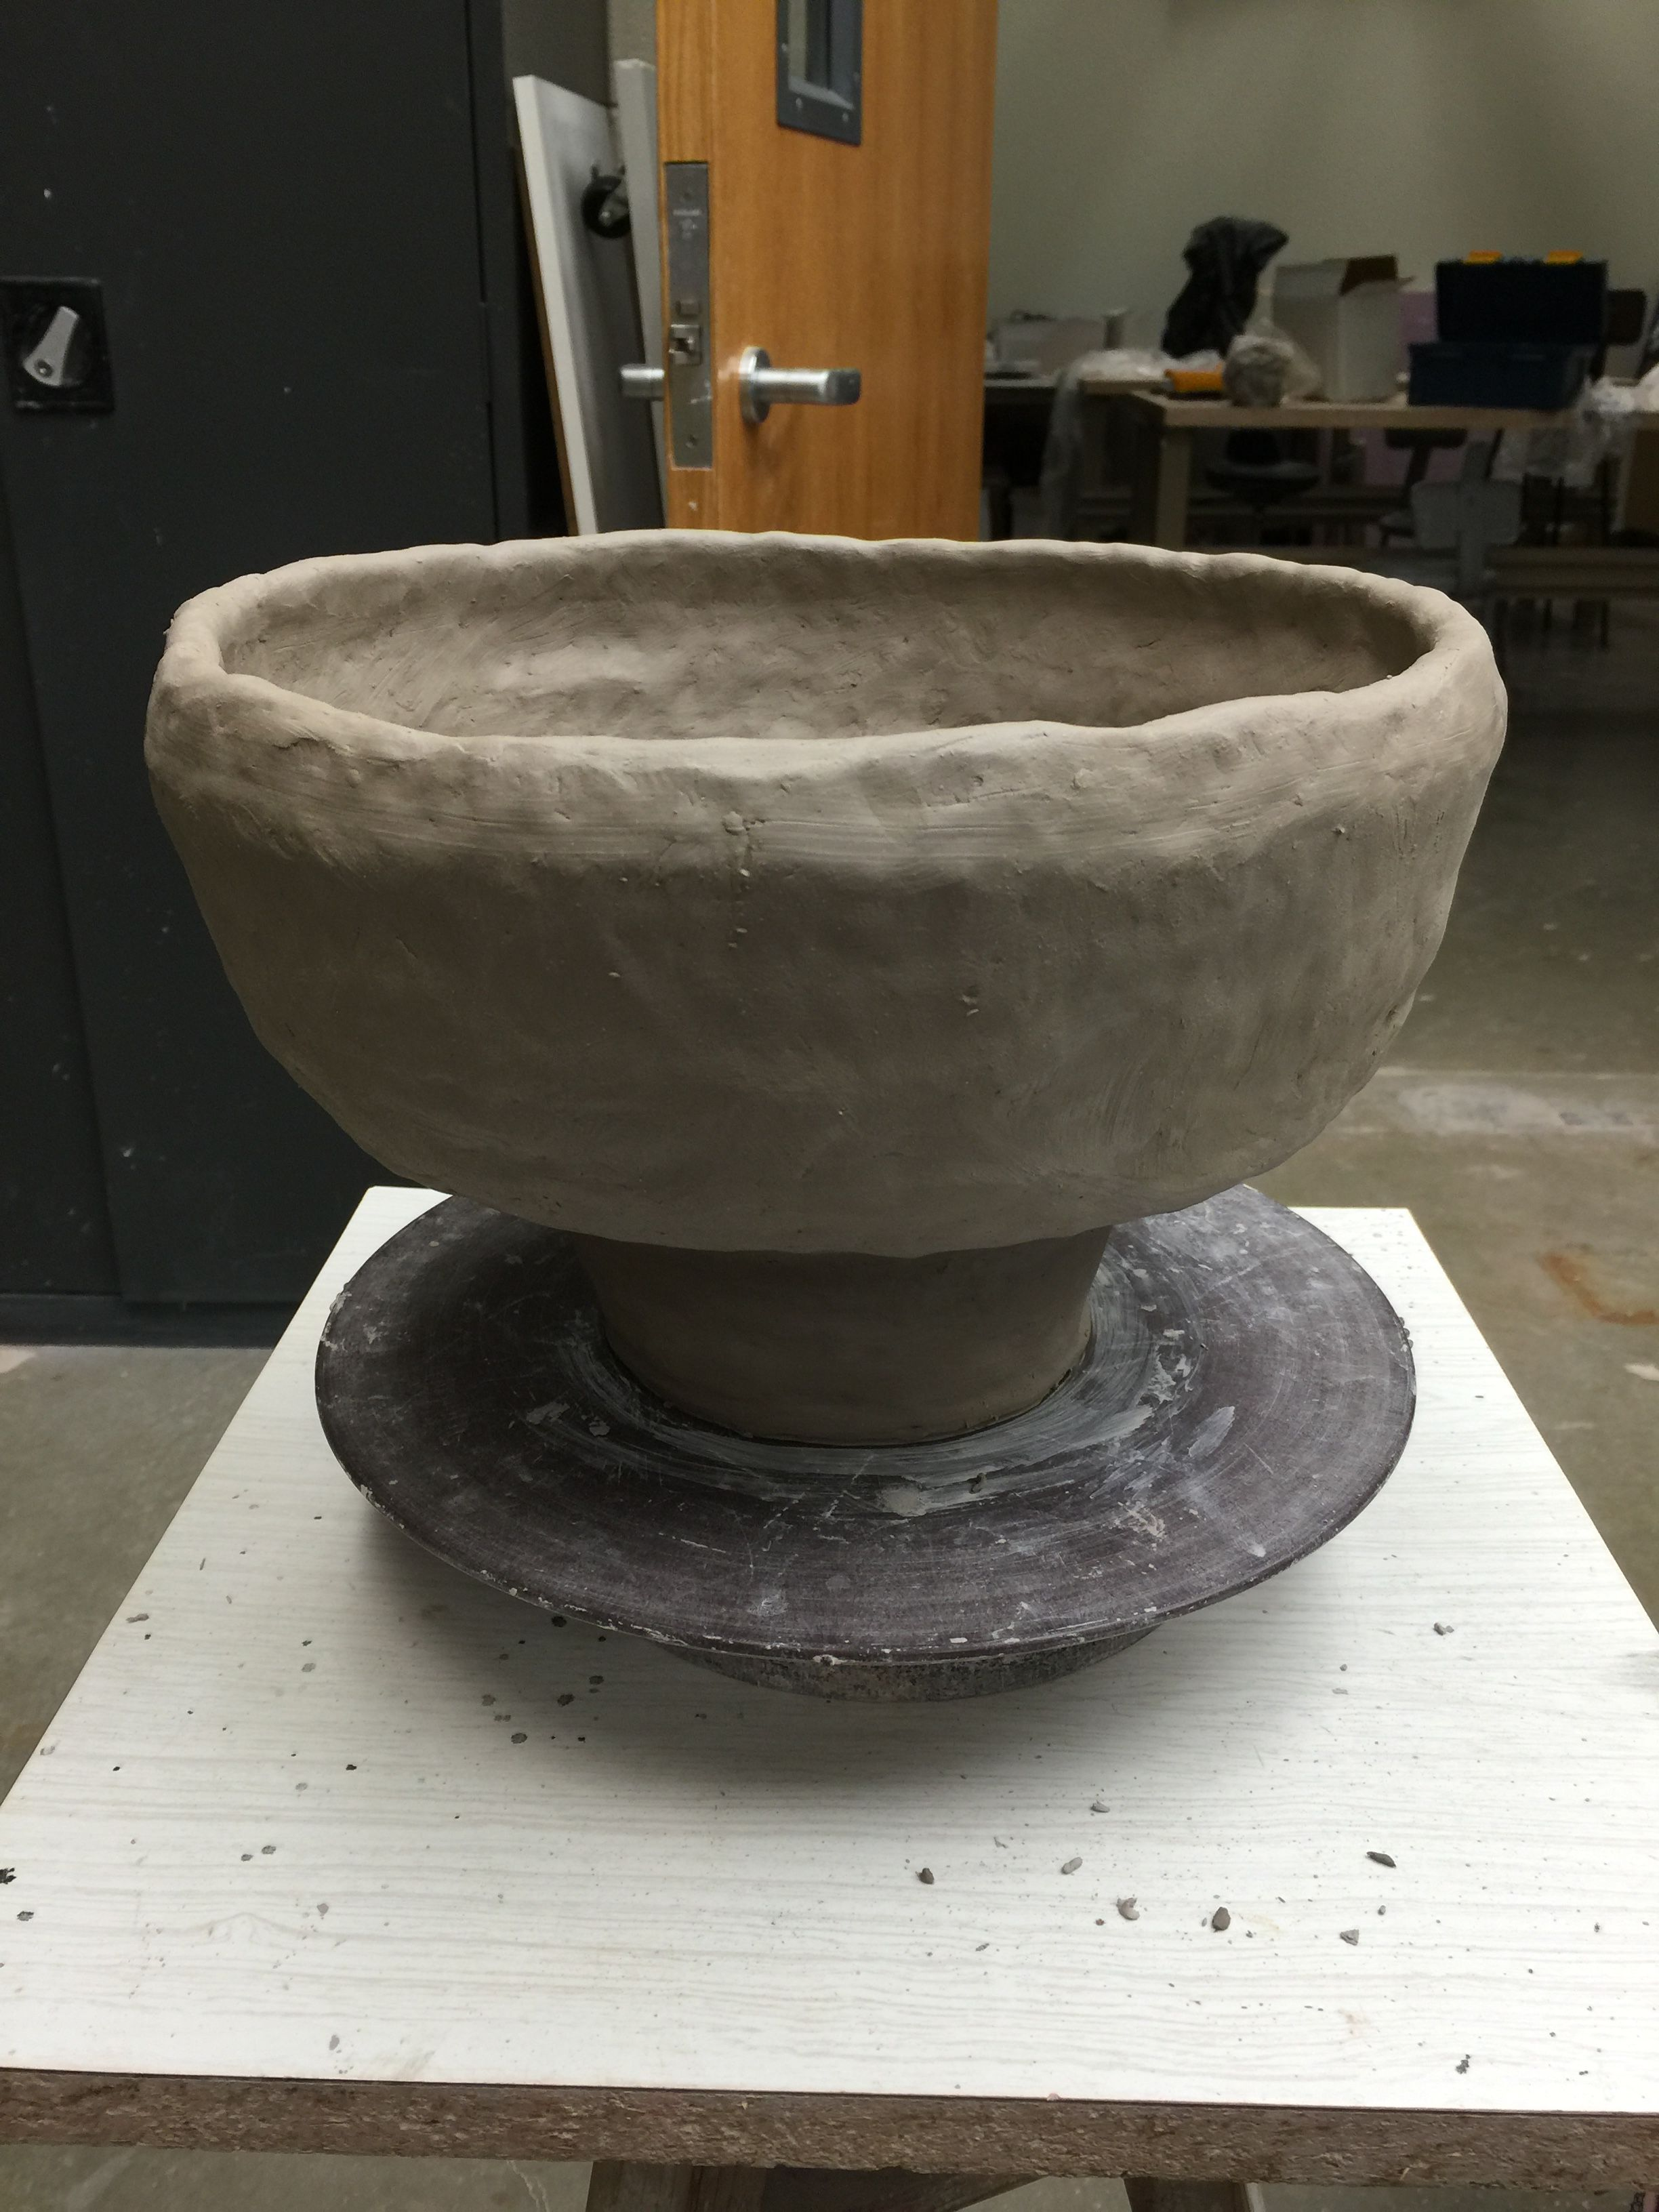 Ceramic coil potvase first time to make one this big and